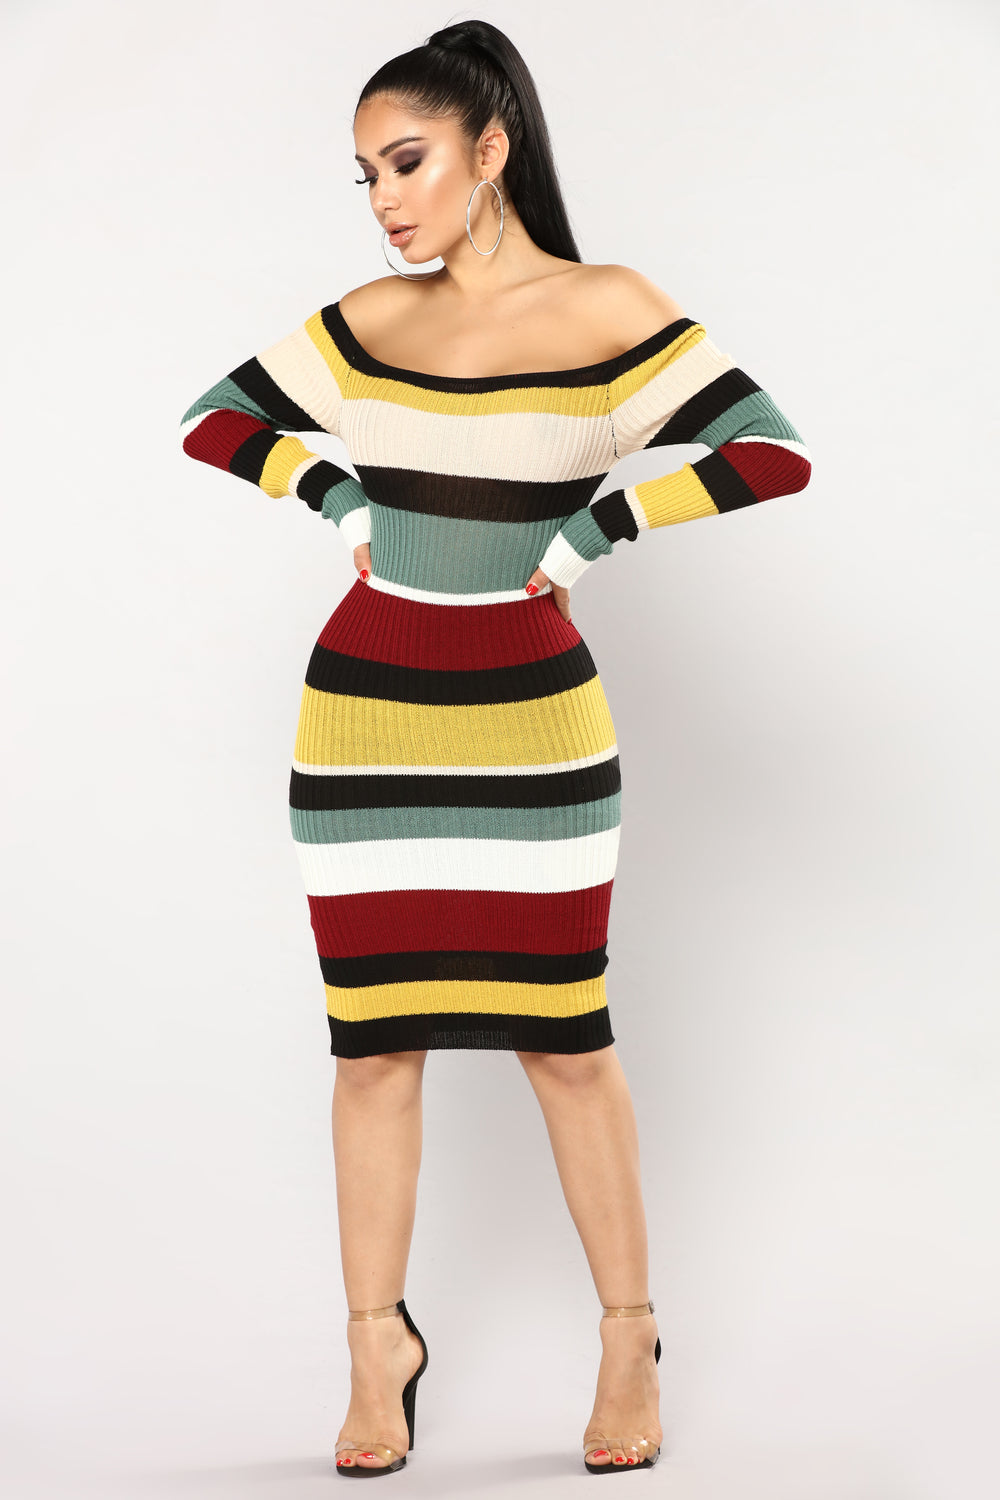 Patsy Off The Shoulder Dress - MultiColor